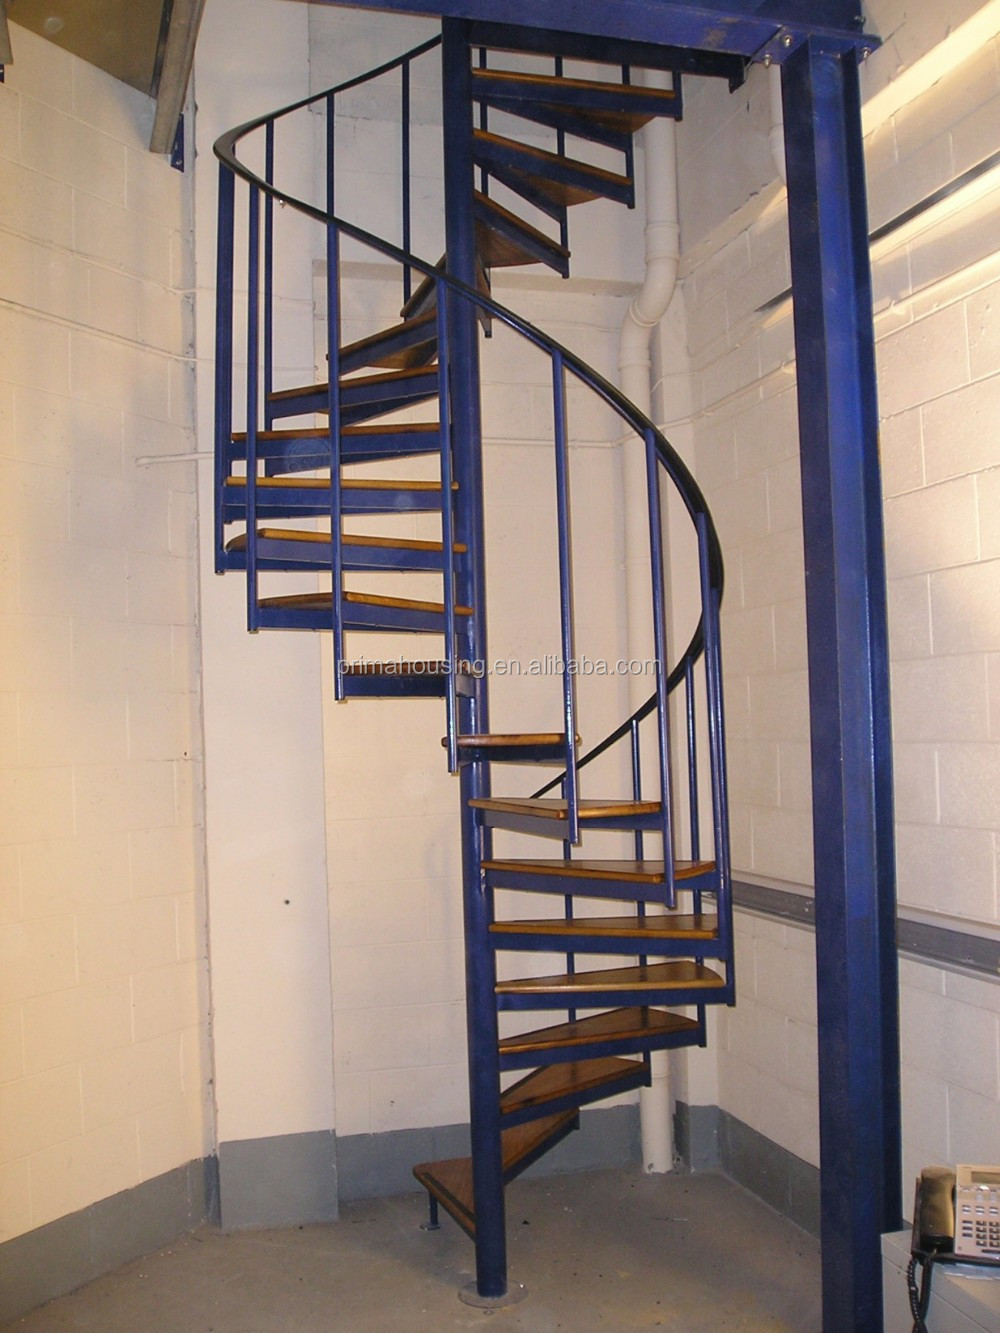 Low Cost Interior Spiral Stairs Design S Shaped Staircase